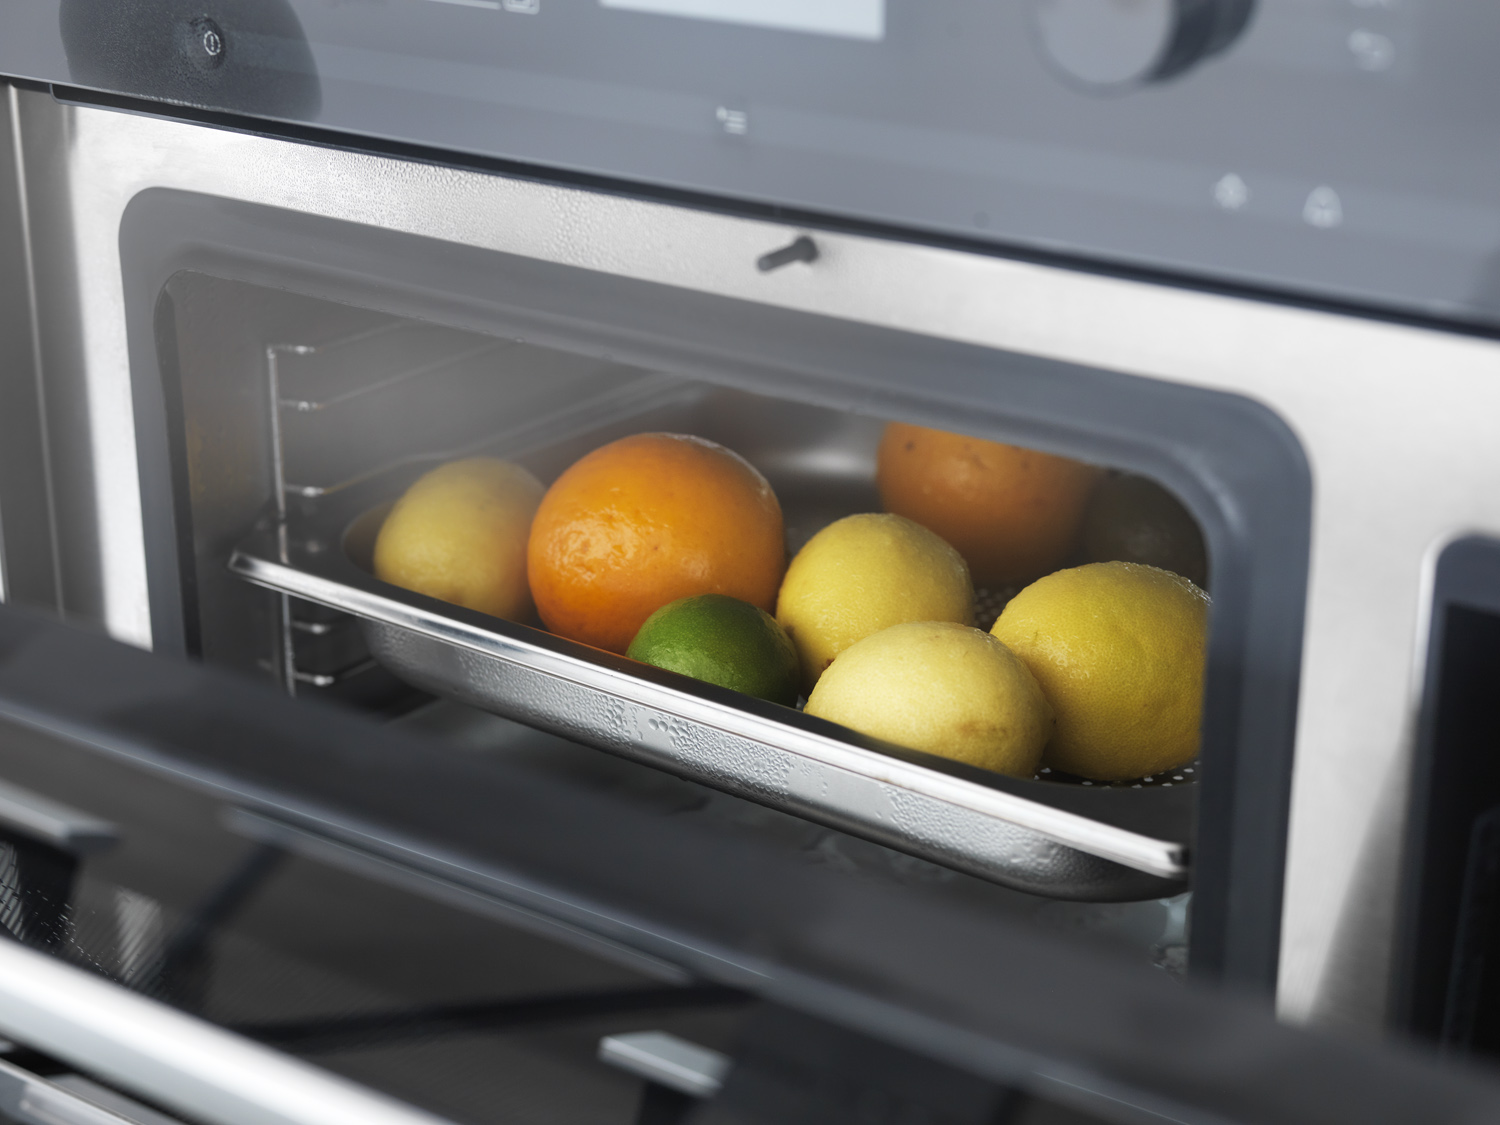 Miele Fruit Steaming